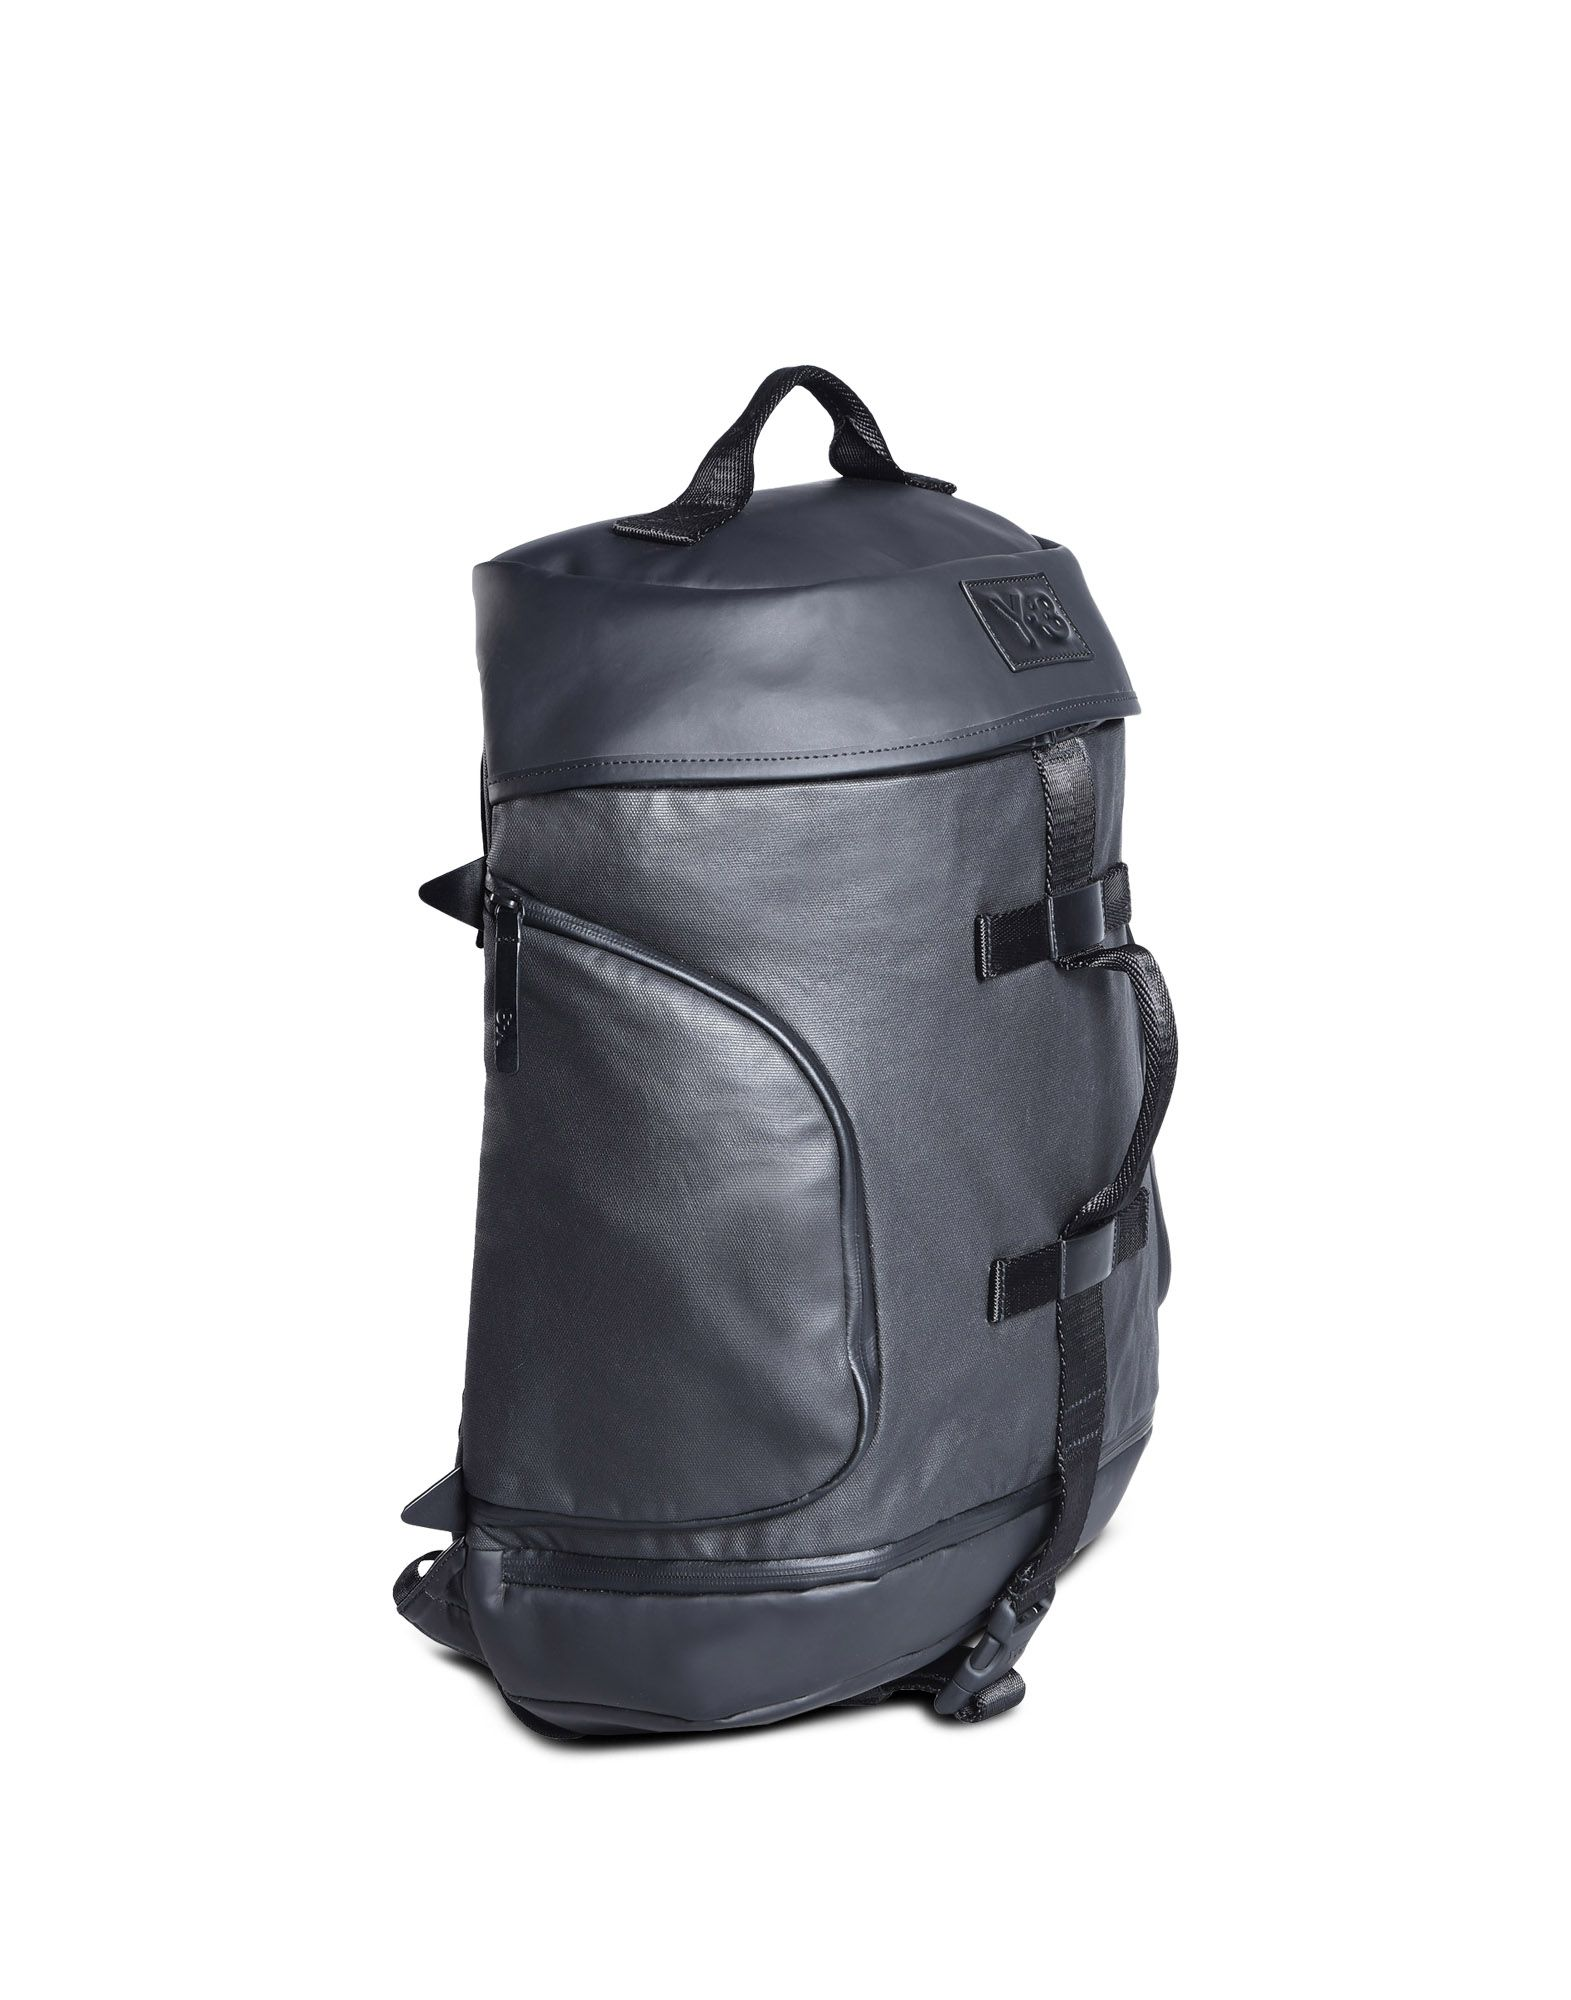 061a624e9853 ... Y-3 Y-3 ICON BACKPACK Backpack E d ...